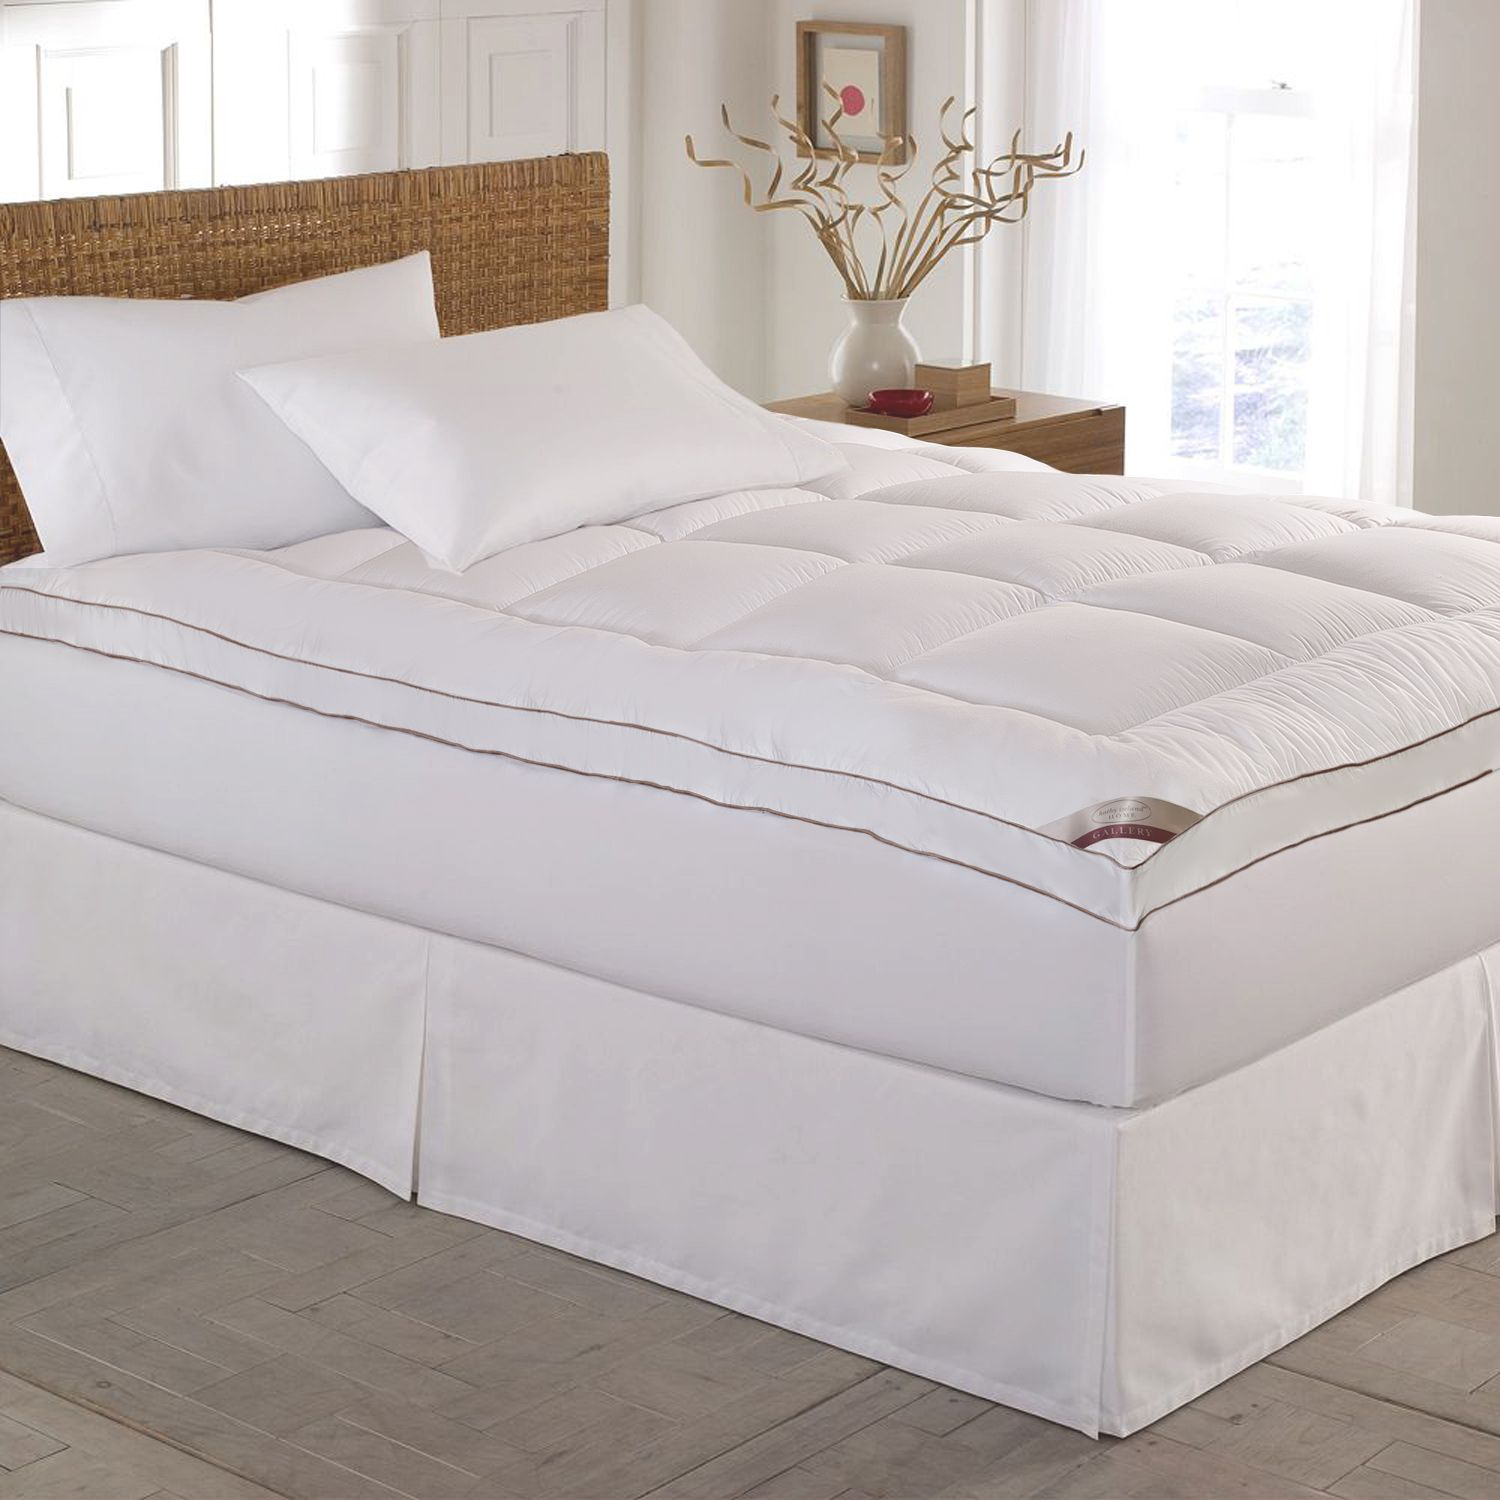 kathy ireland 2inch quilted deeppocket mattress topper